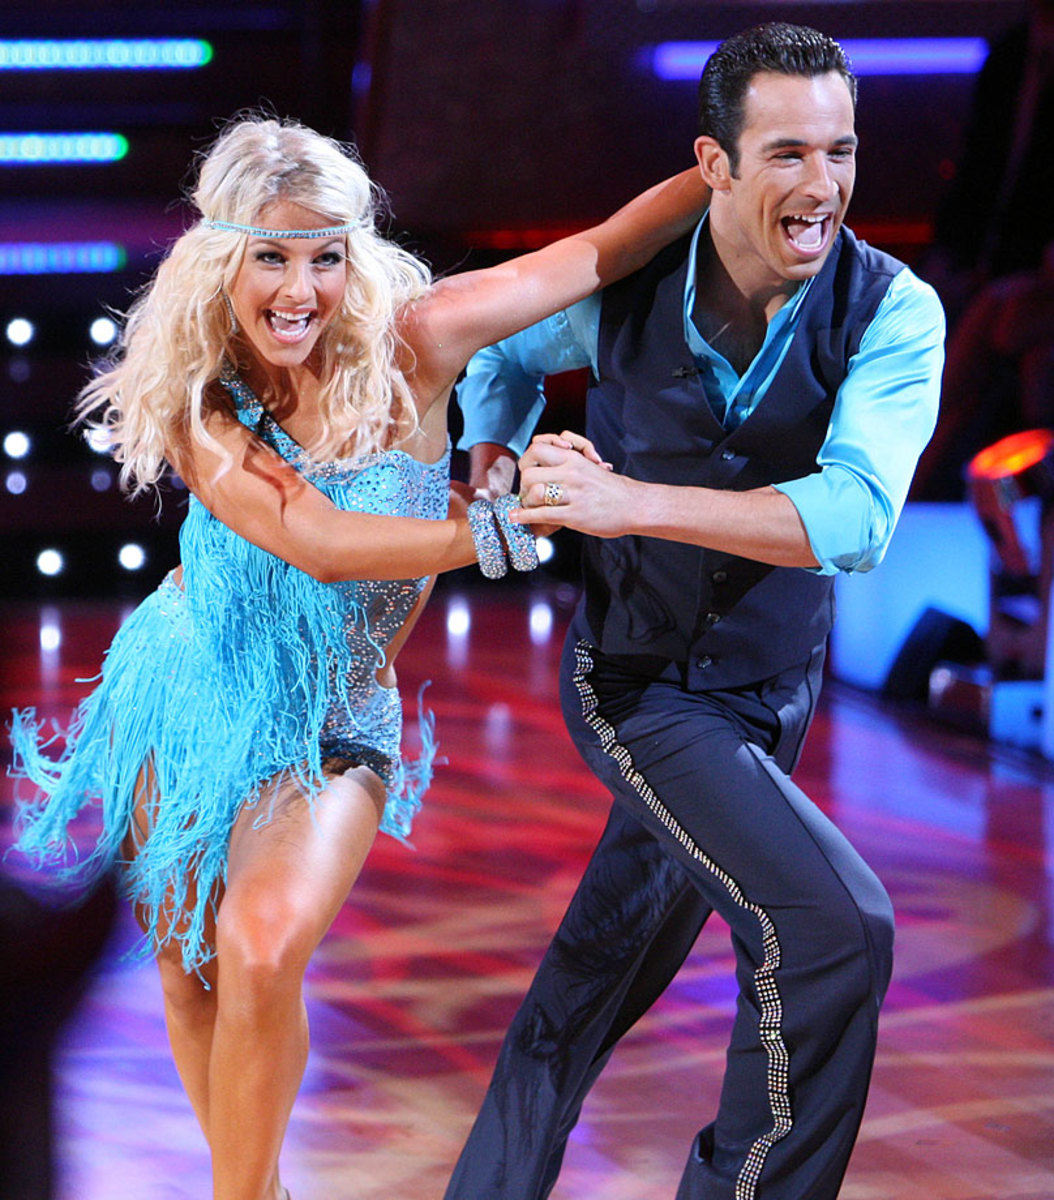 helio-castroneves-julianne-hough-dancing-with-the-stars.jpg